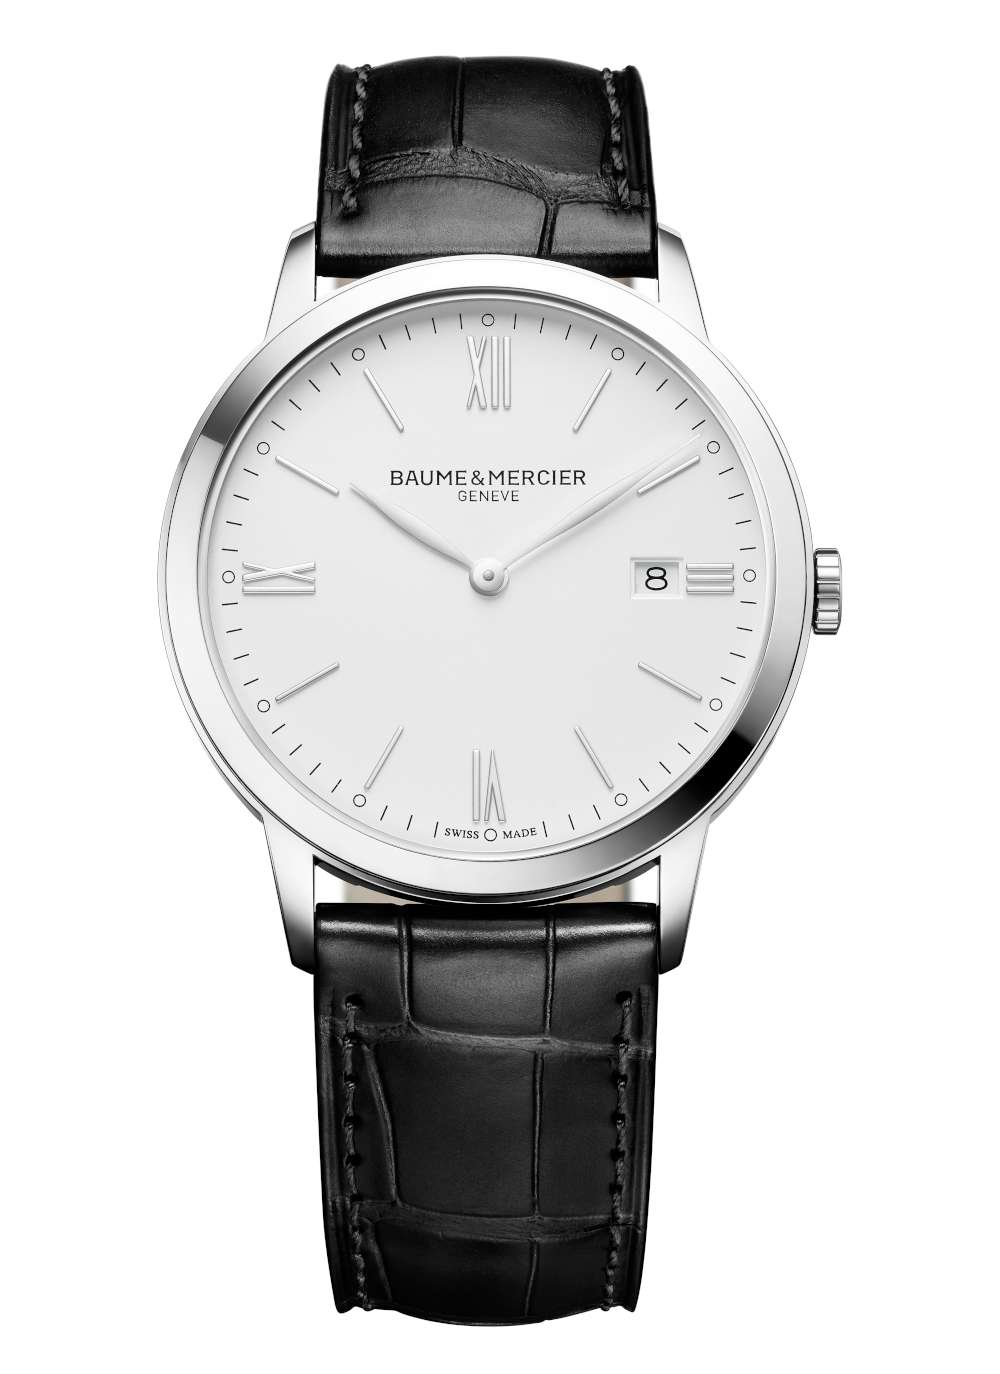 Baume & Mercier My Classima, reference 10323